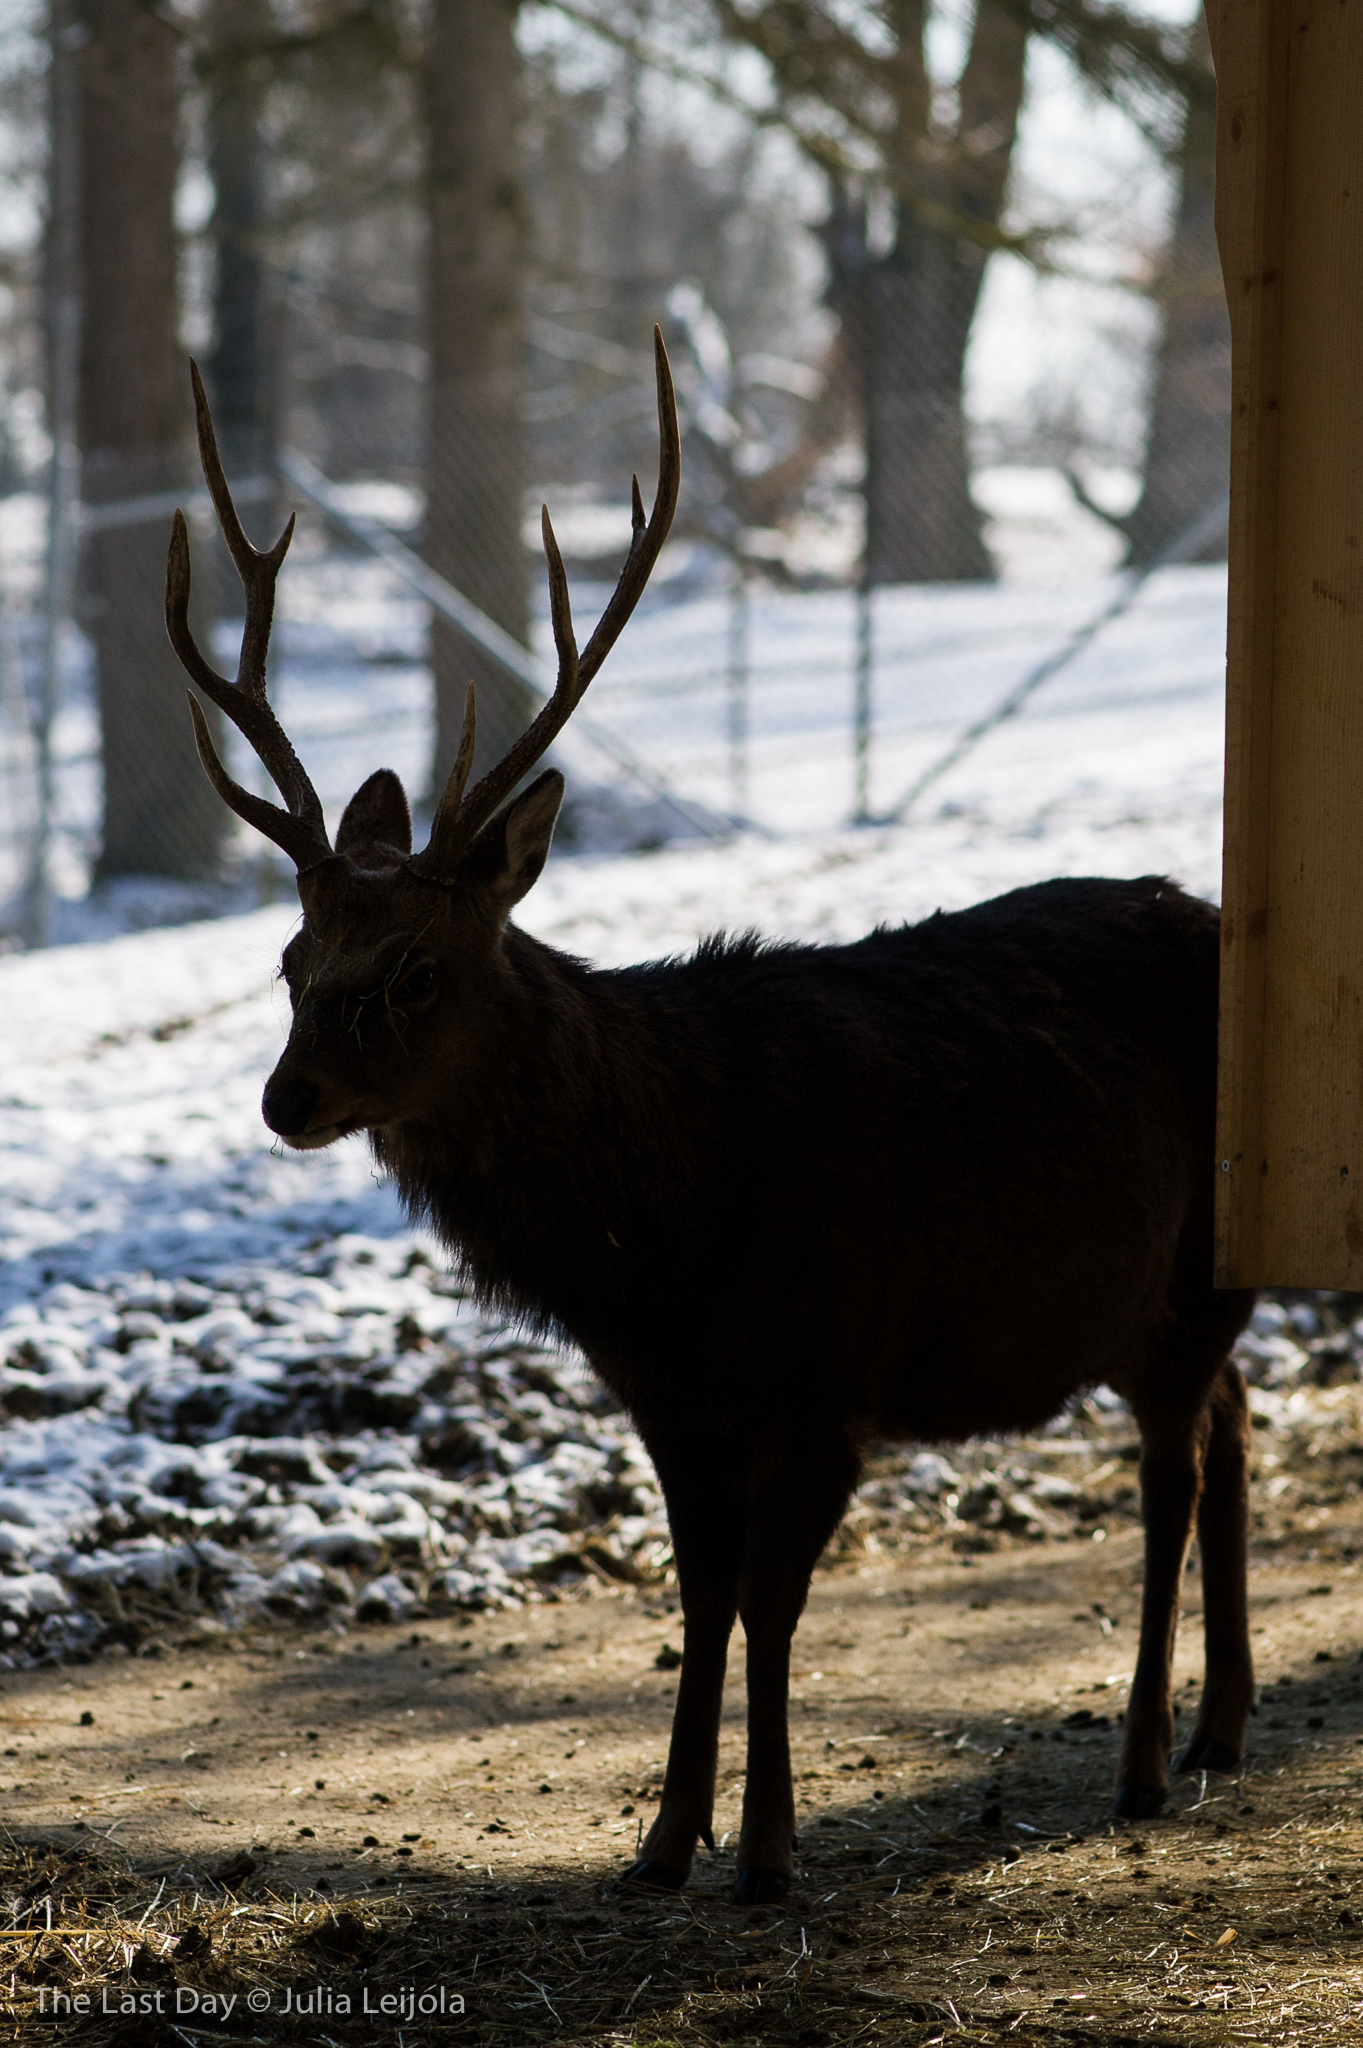 A male Cervus nippon is stood in the shade of a wooden structure - in the background are fences.